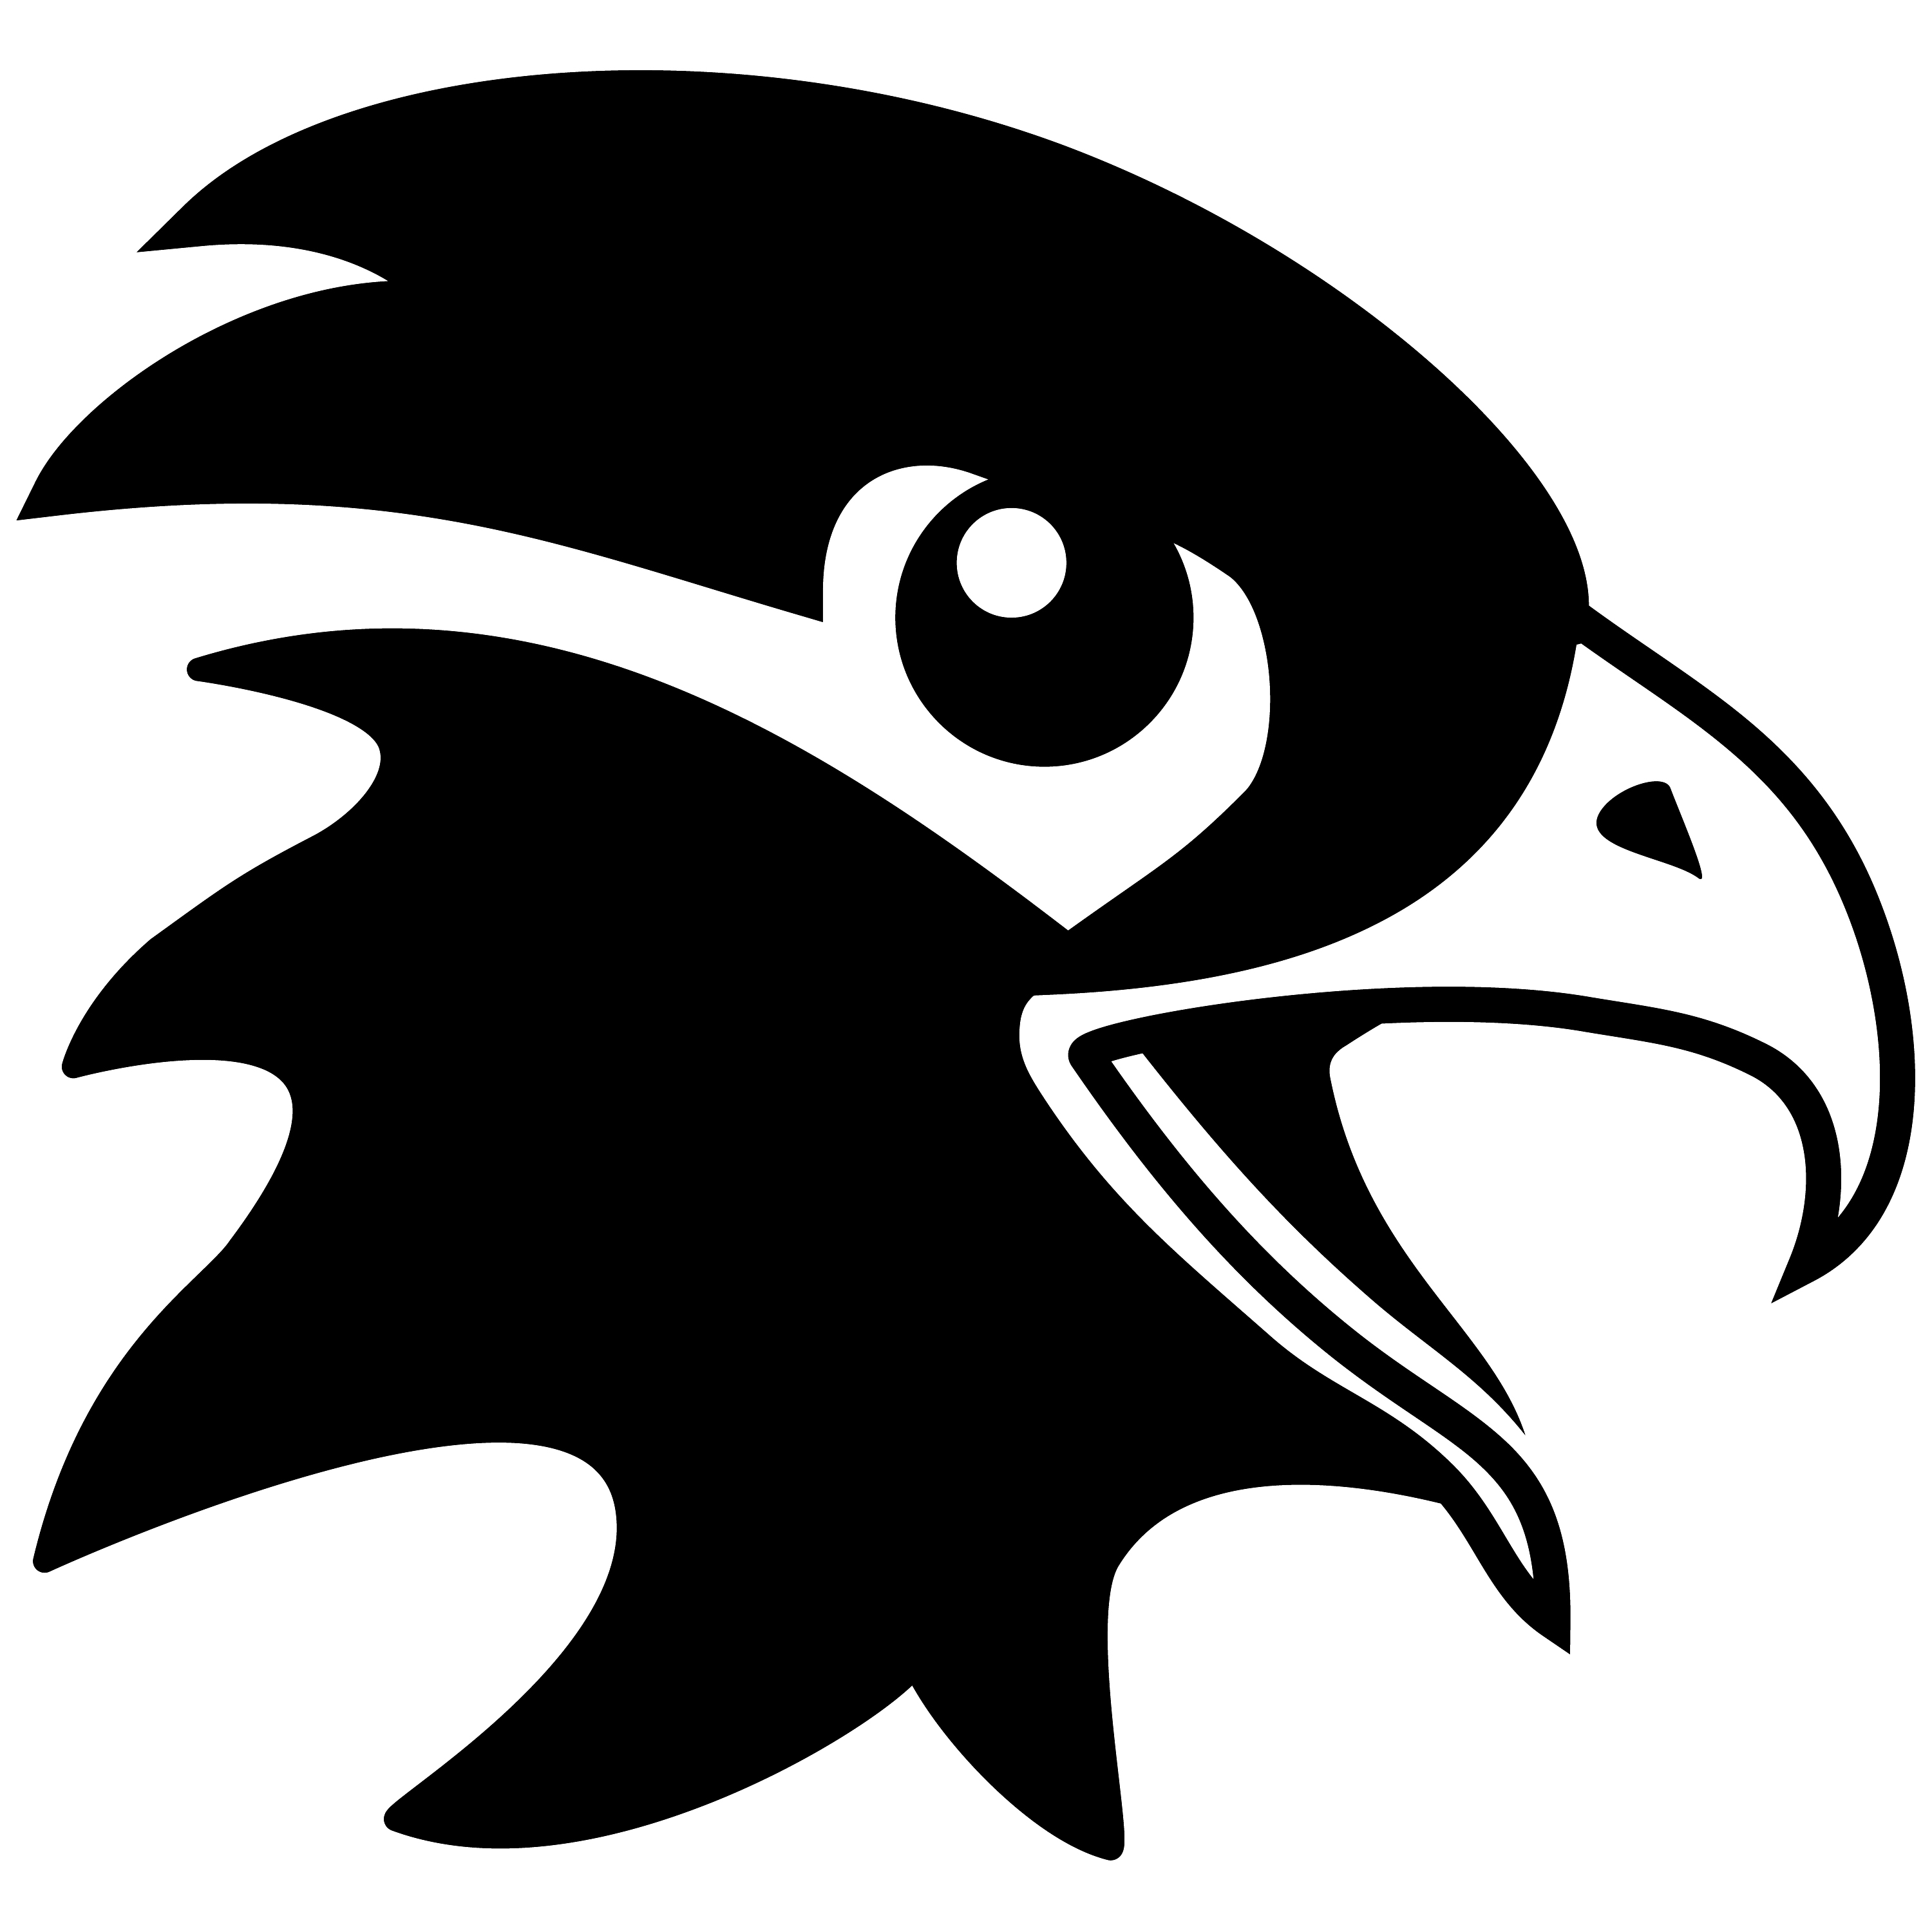 Black Eagle clipart black and white Dragons gallery for wings Vector